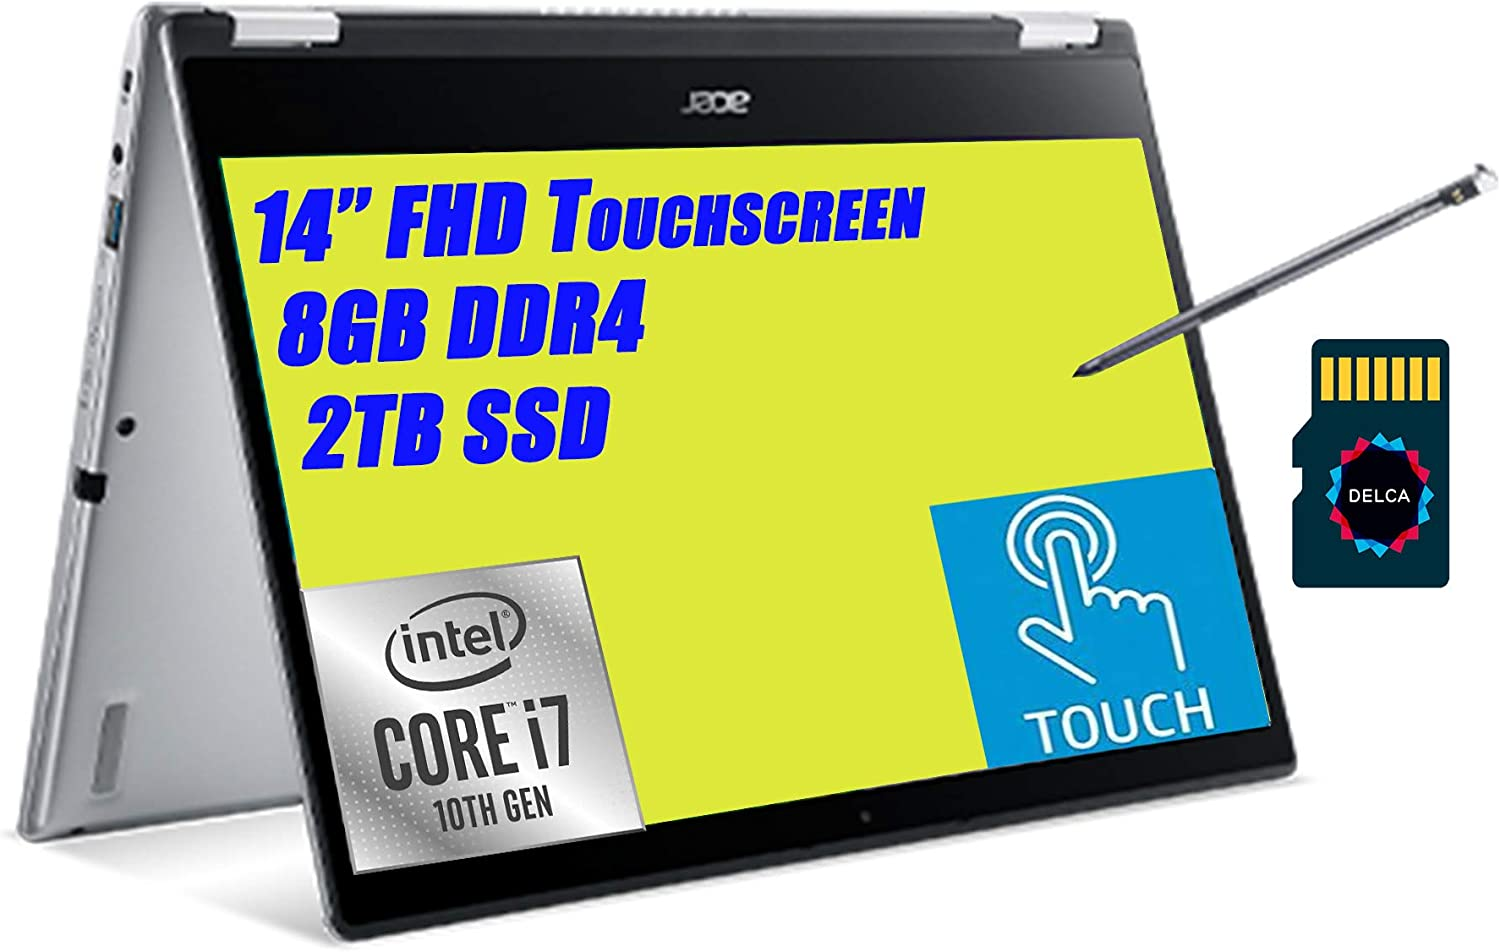 Acer Spin 3 14 Premium Albuquerque Mall 2 in Touchscree Gifts 1 I IPS Laptop 14